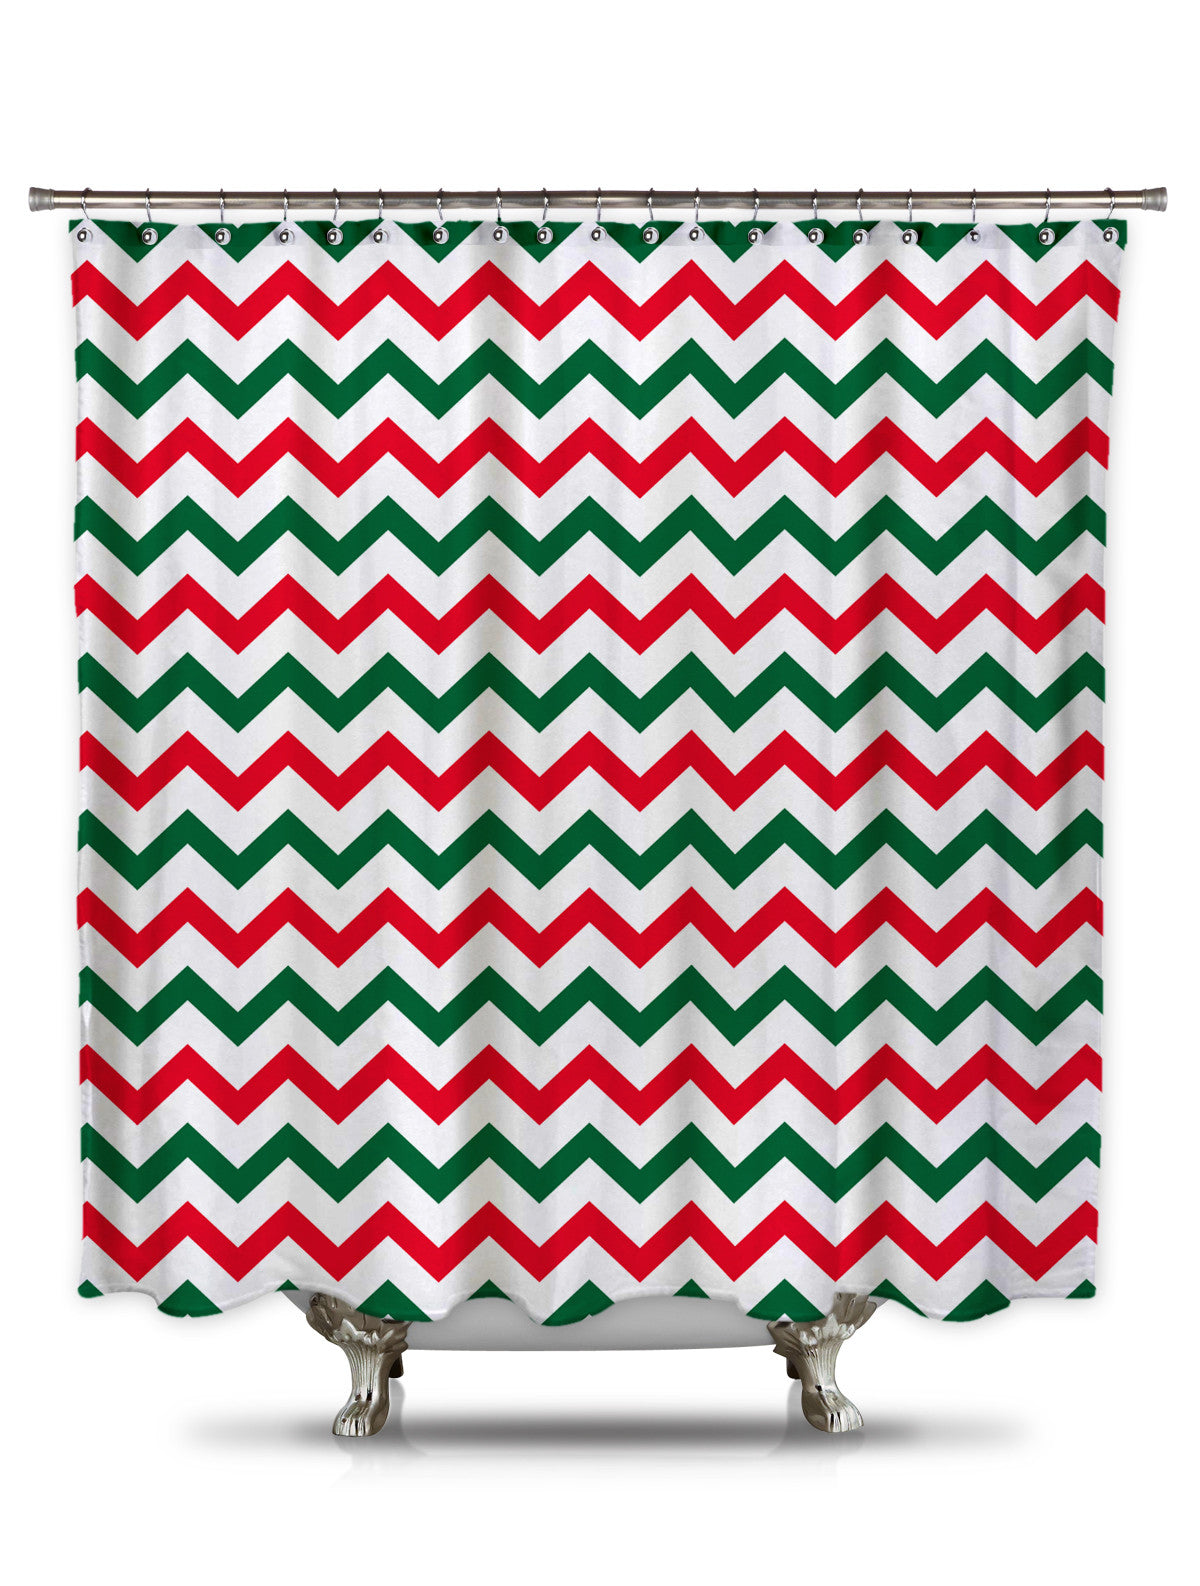 Red and Green Chevron Shower Curtain Christmas shower curtain